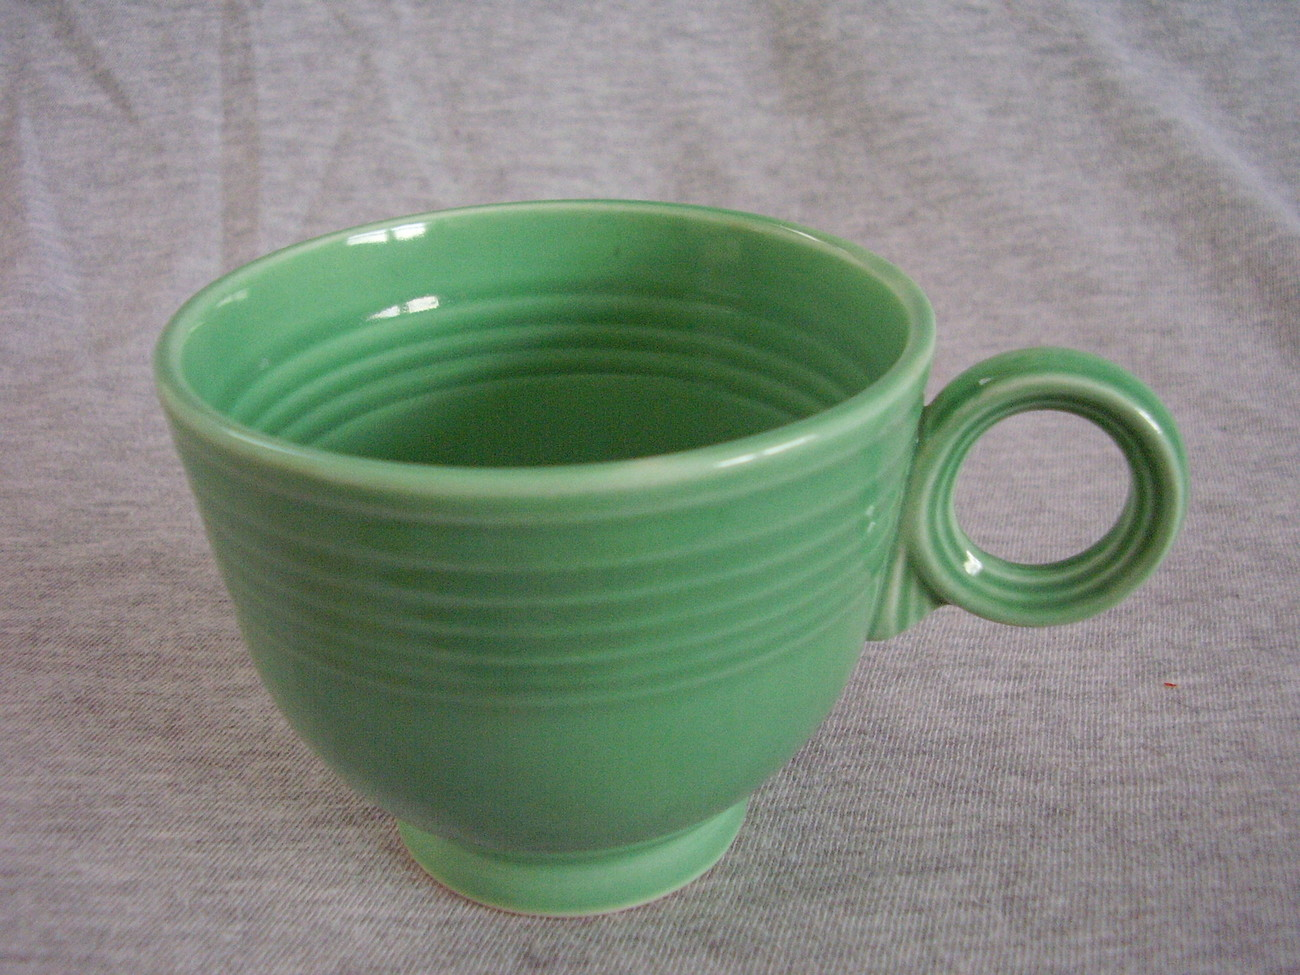 Vintage Fiestaware Original Green Ring Handle Teacup C